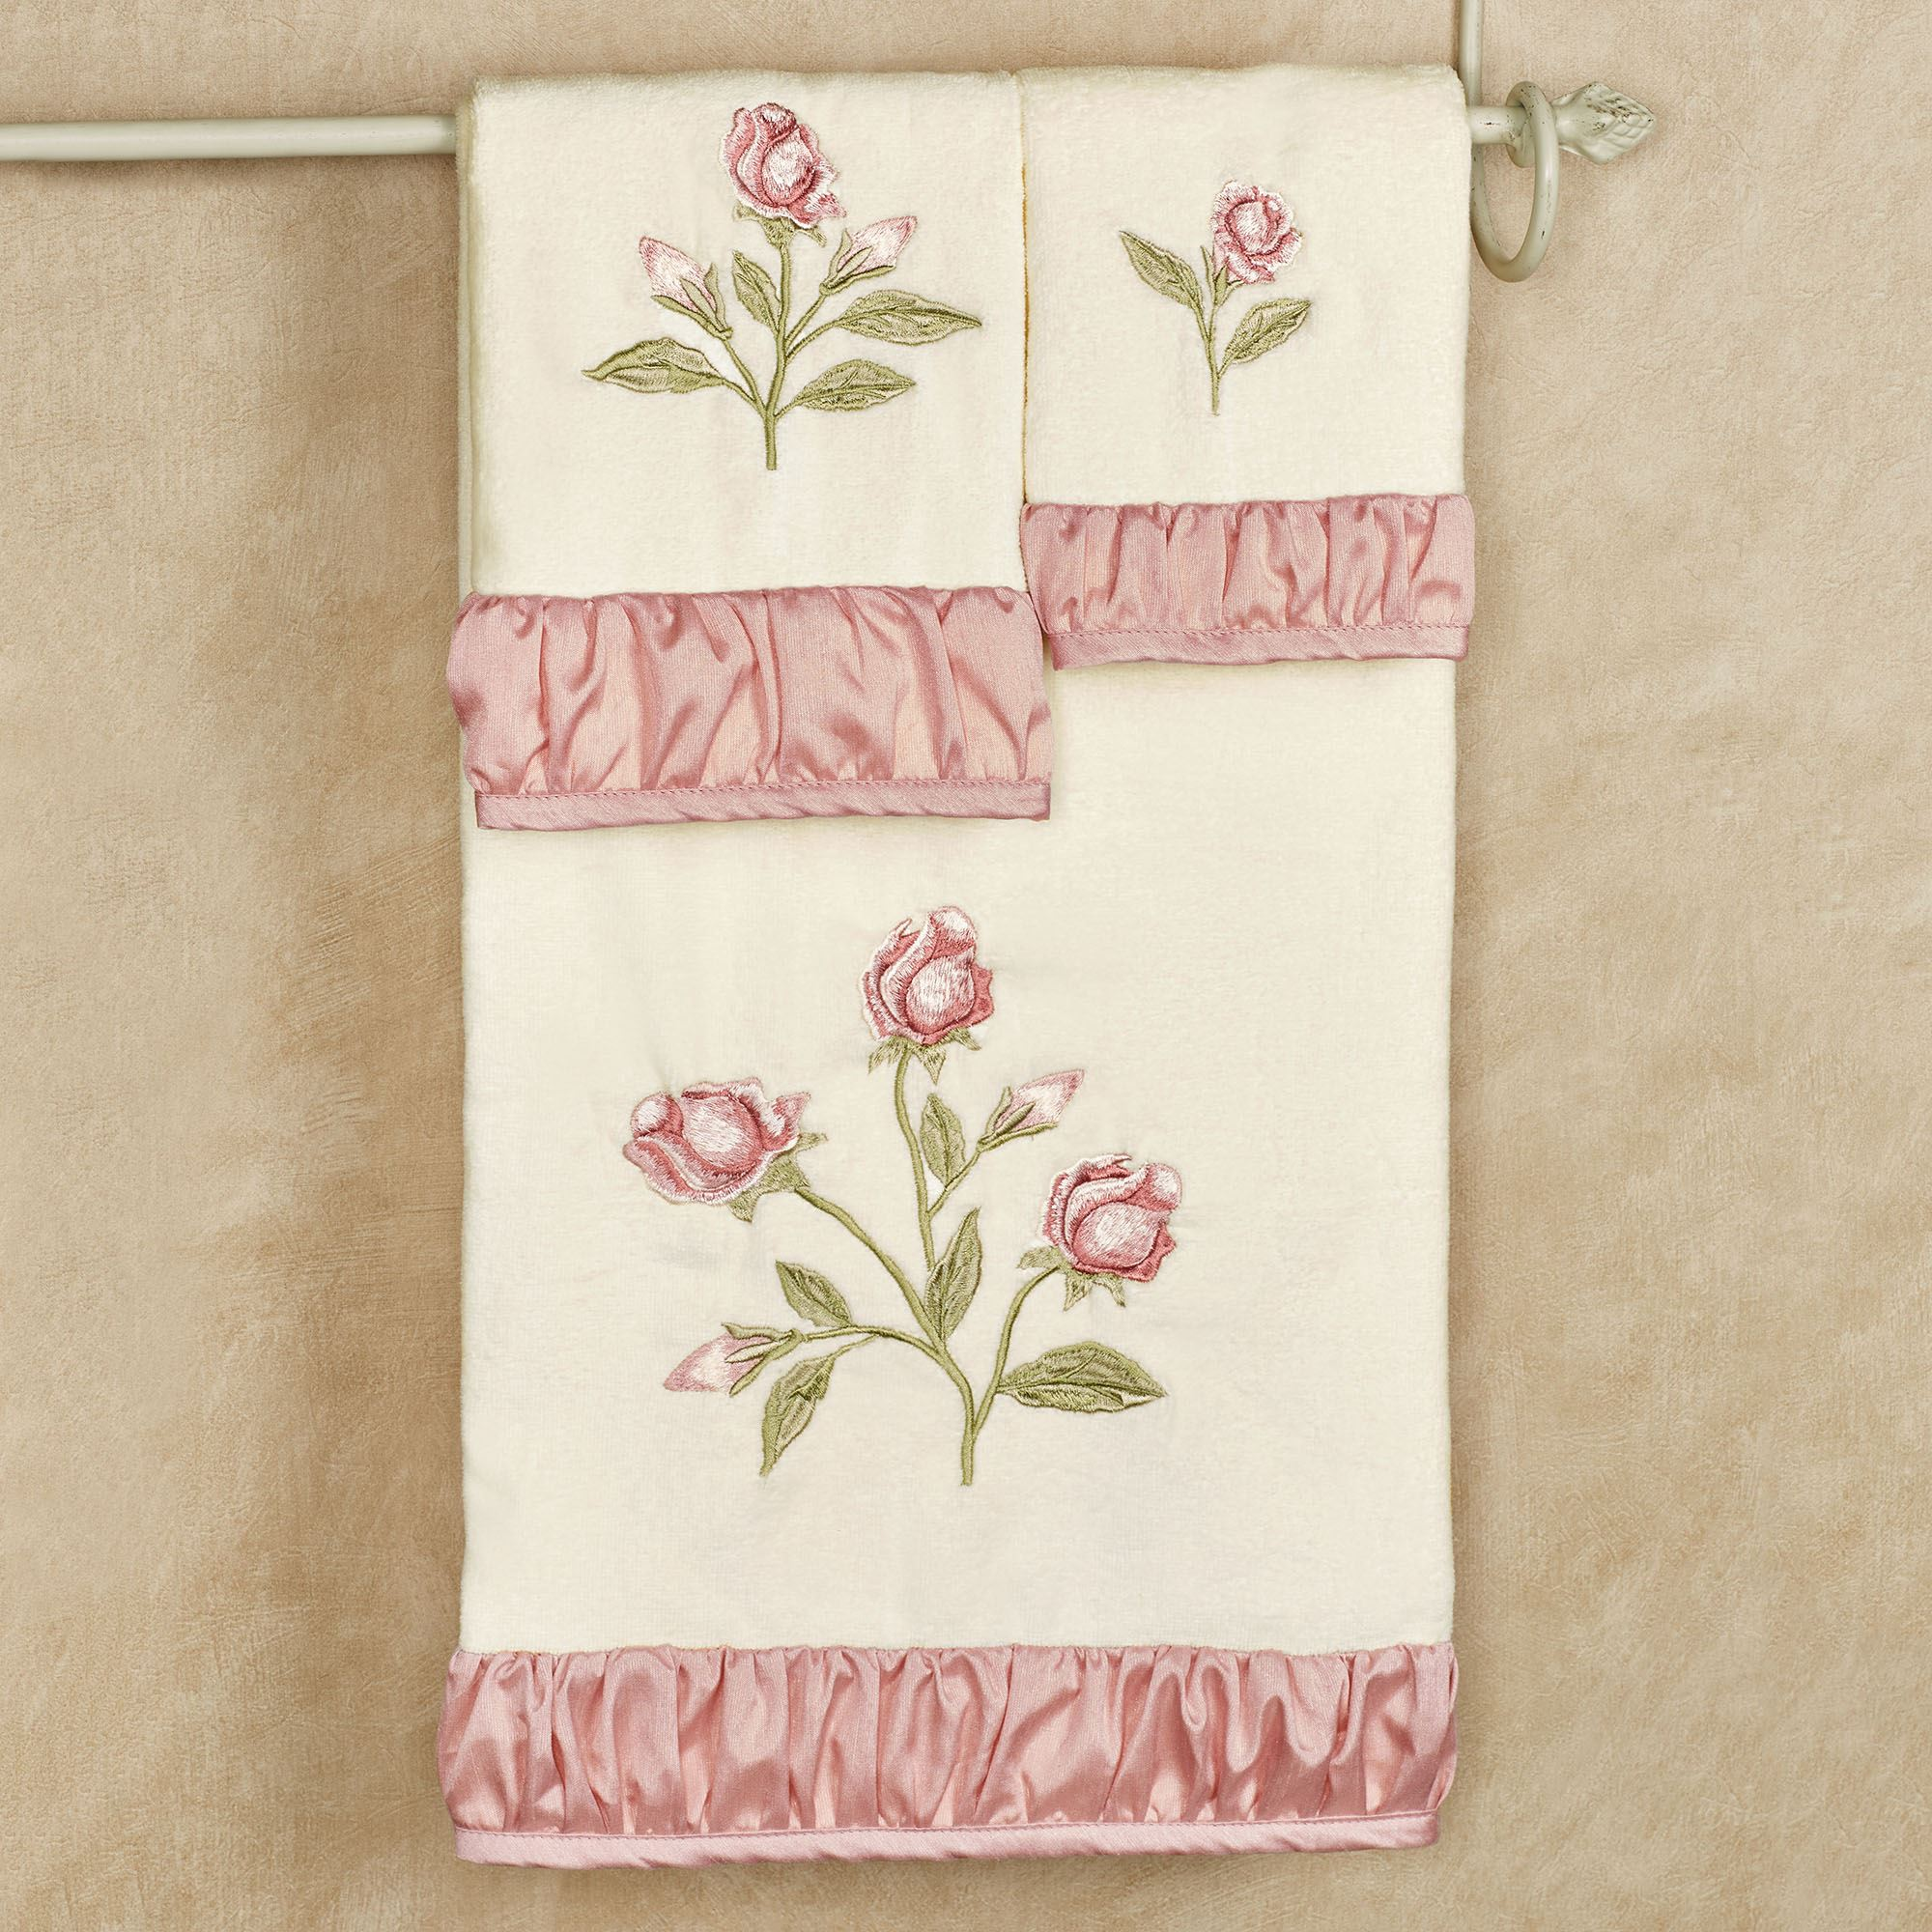 Rose Embroidered Towels: Blush Rose Embroidered Floral Bath Towel Set